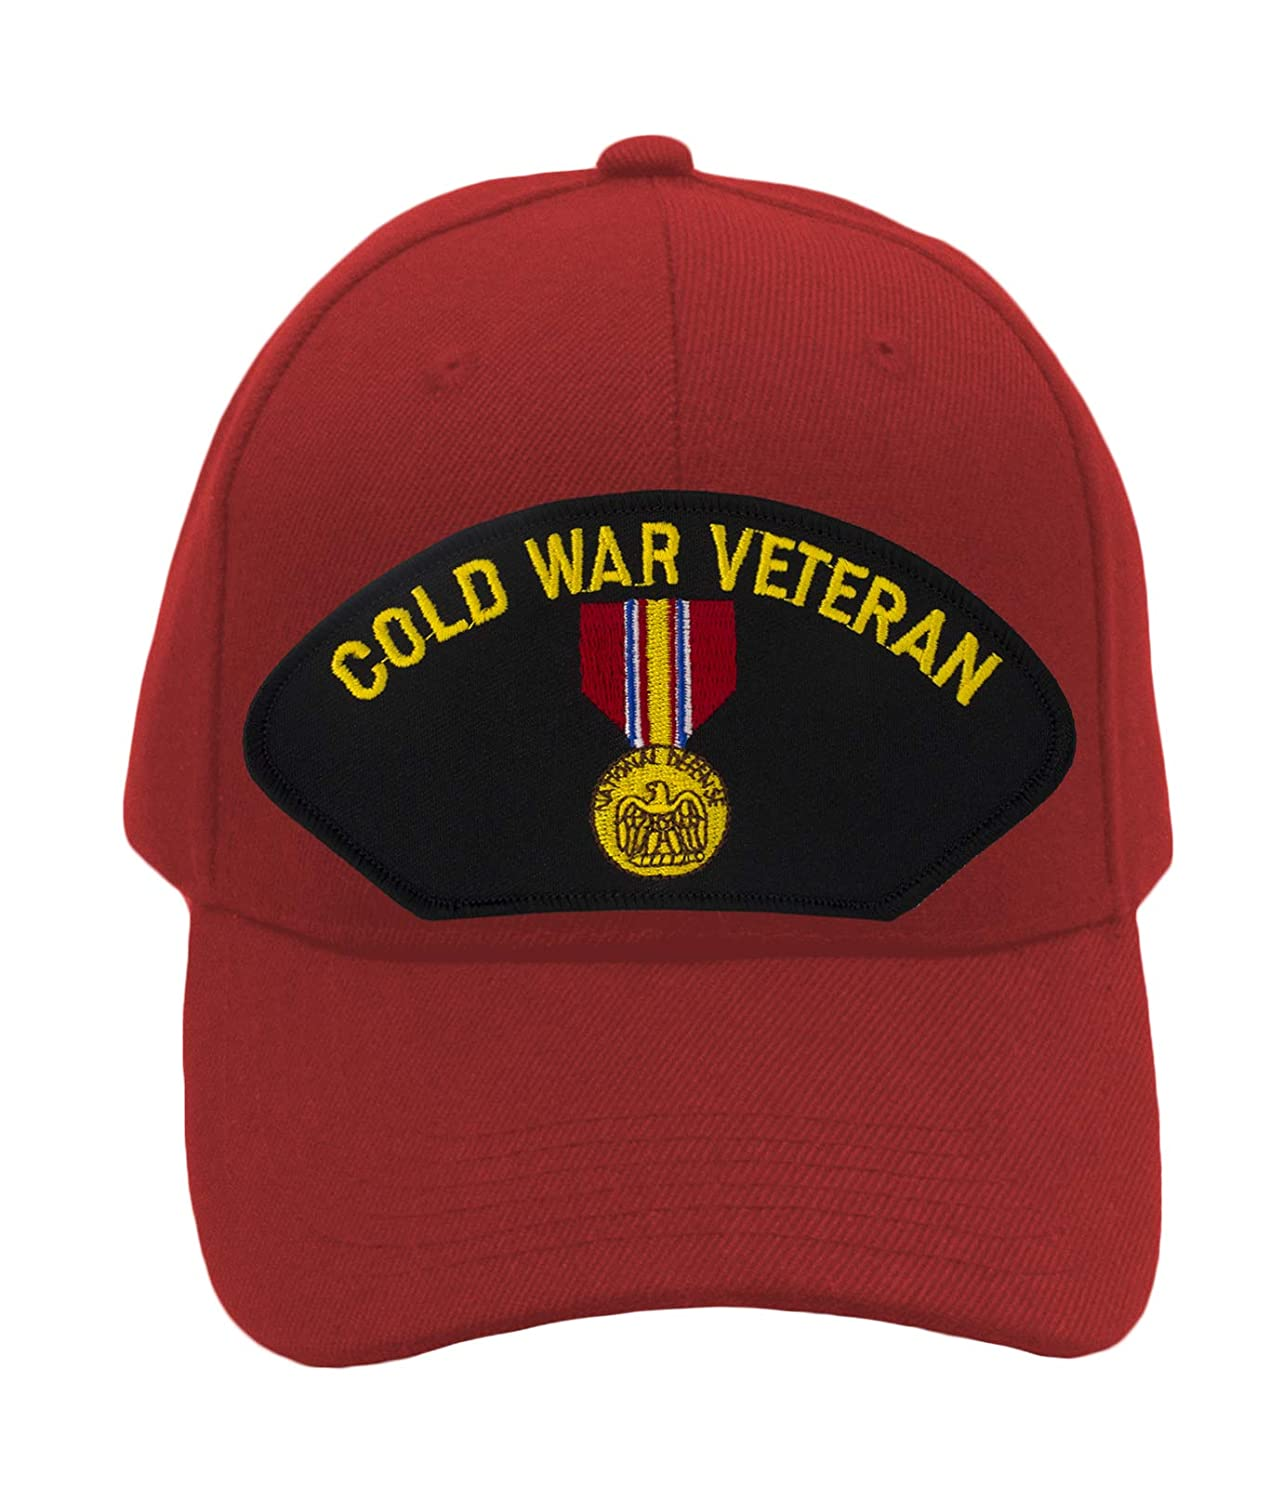 Cold War Veteran Era Hat//Ballcap Adjustable One Size Fits Most Patchtown National Defense Service Medal